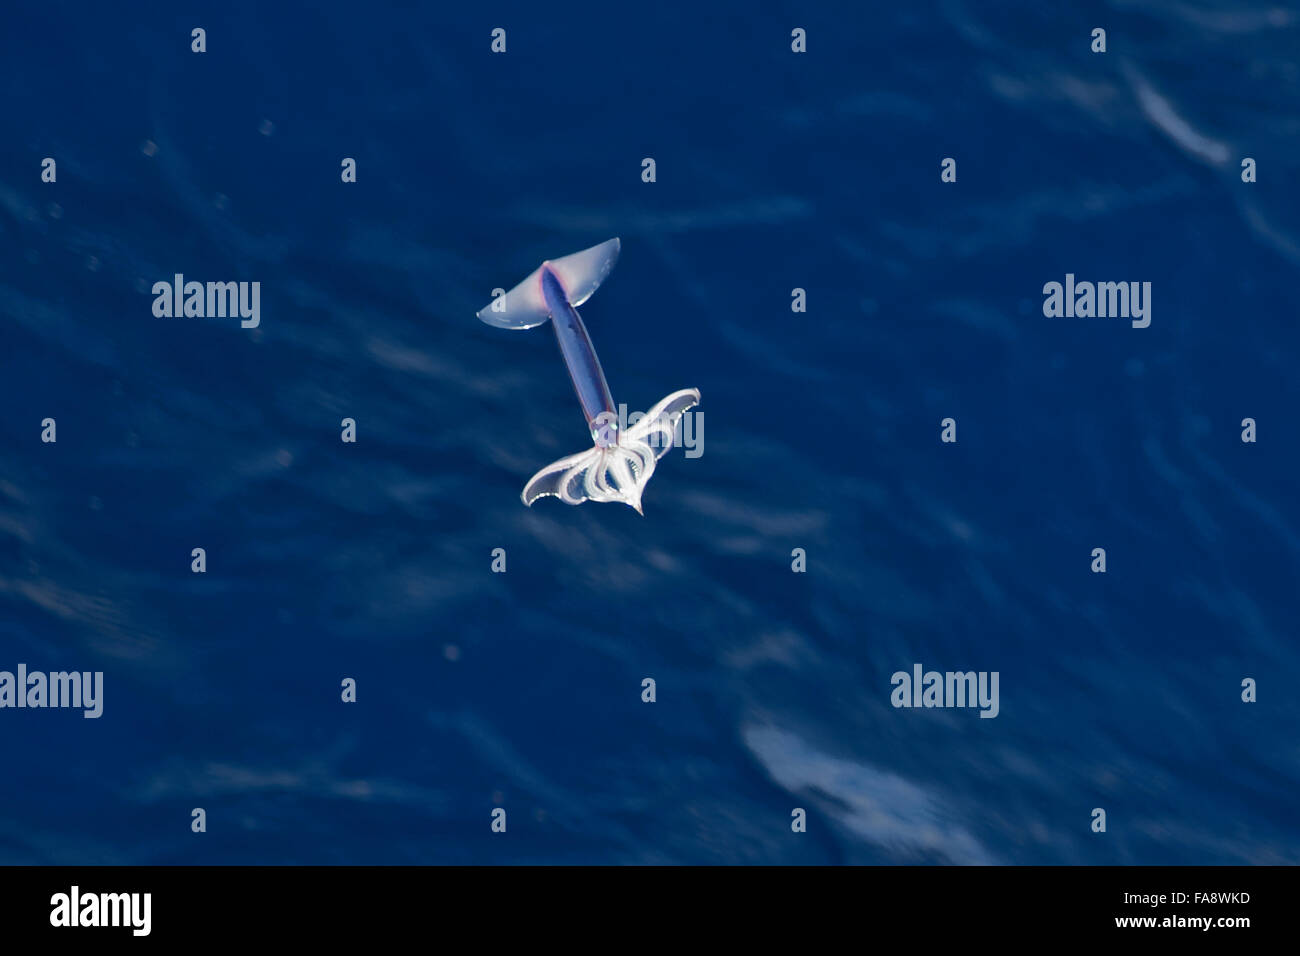 Very rare image of a Neon Flying Squid (Ommastrephes bartramii) in mid-air, South Atlantic Ocean, NOT a digital - Stock Image